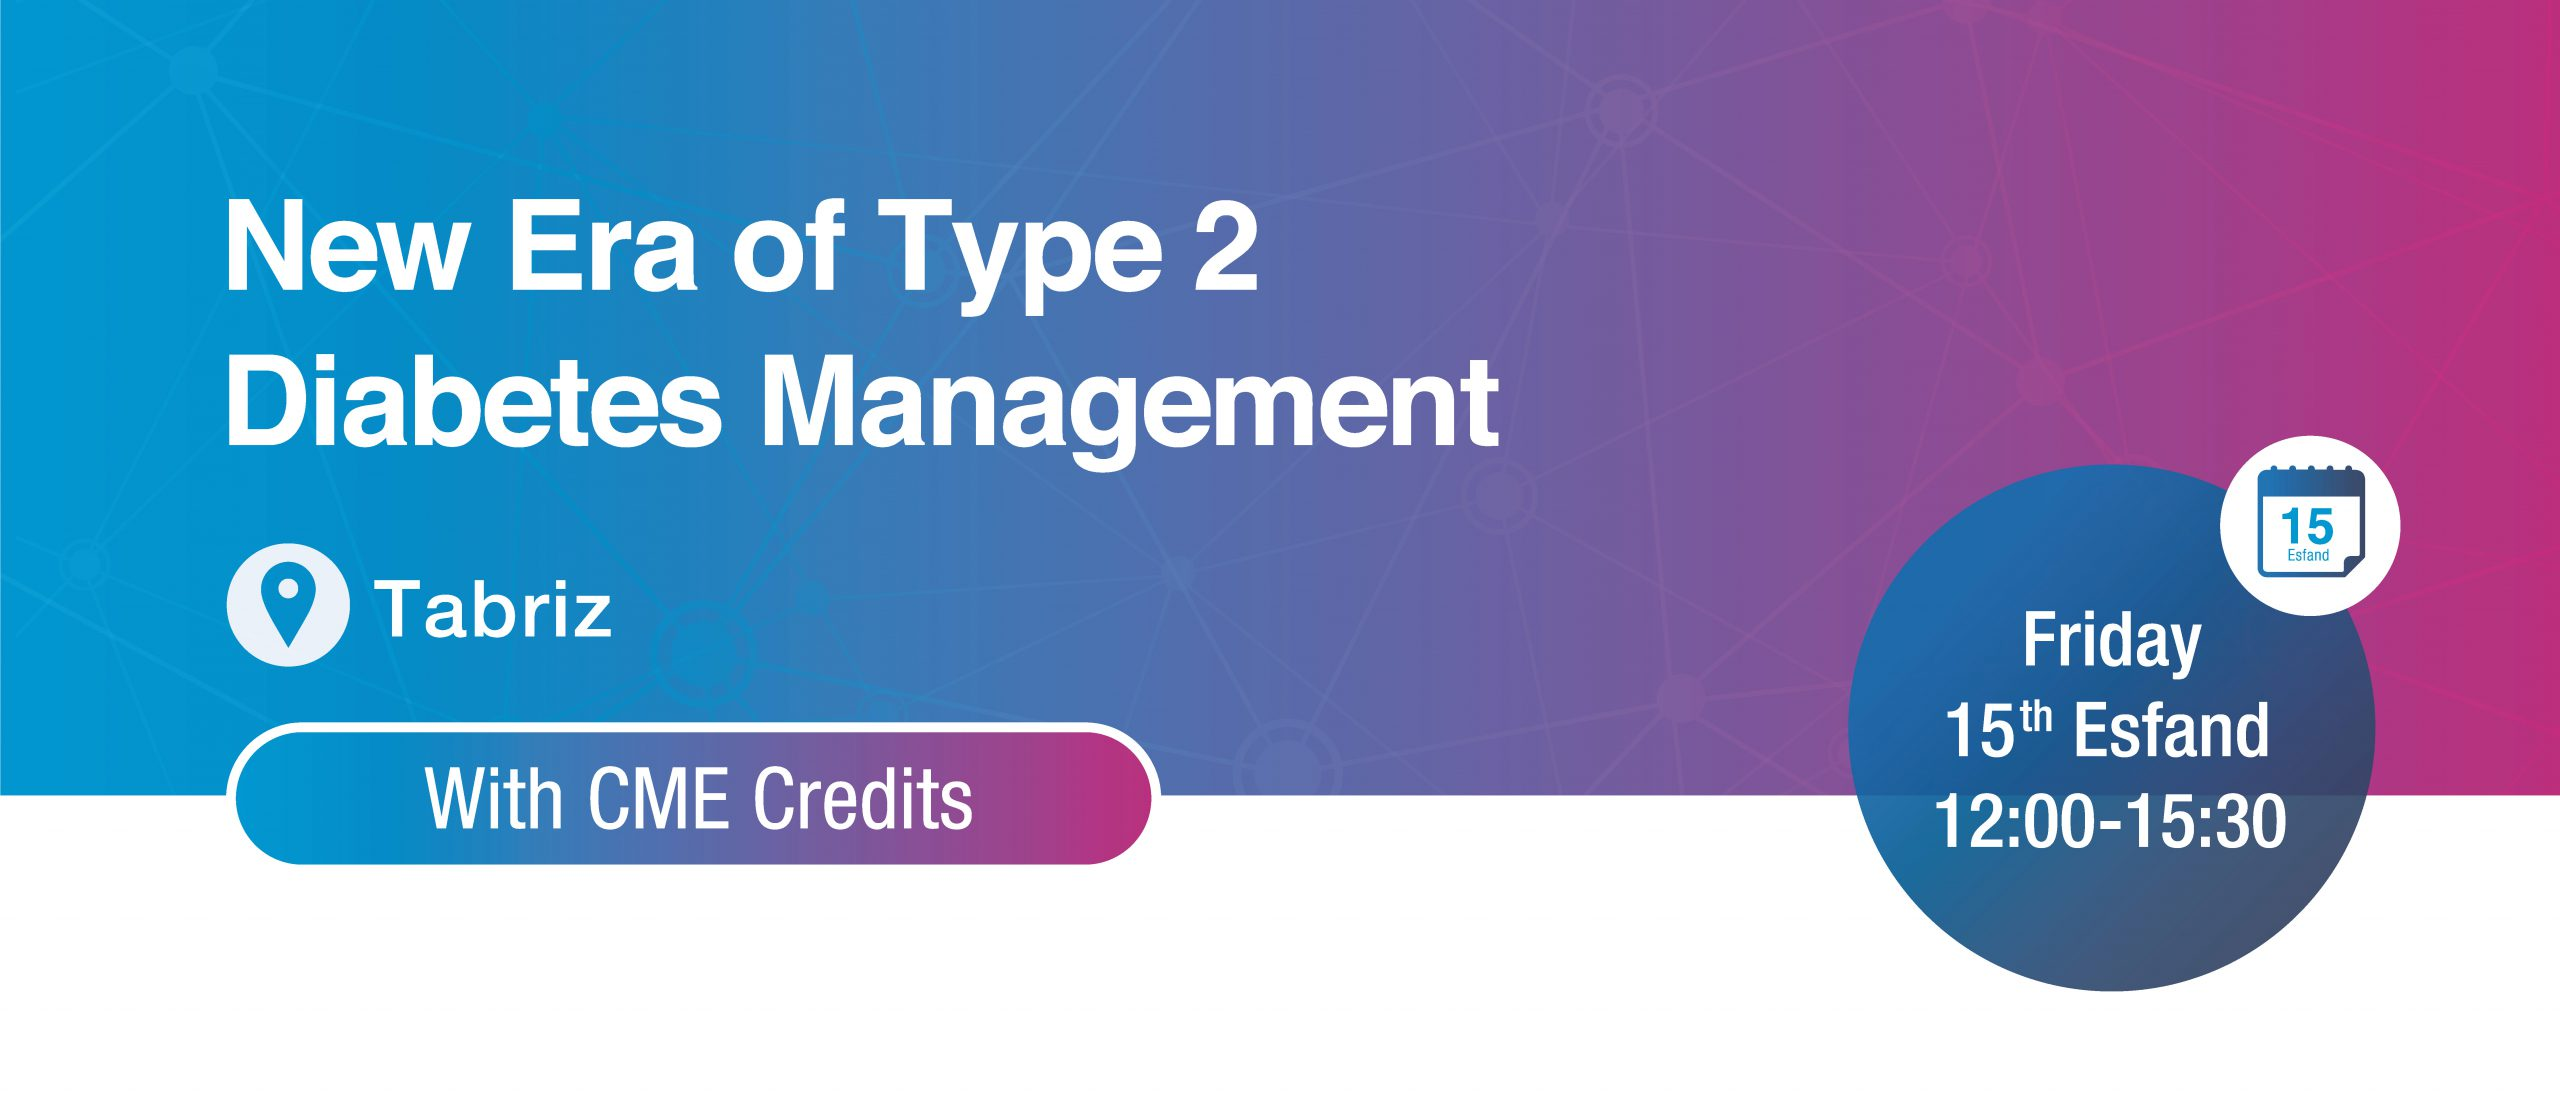 New Era of Type 2 Diabetes Management